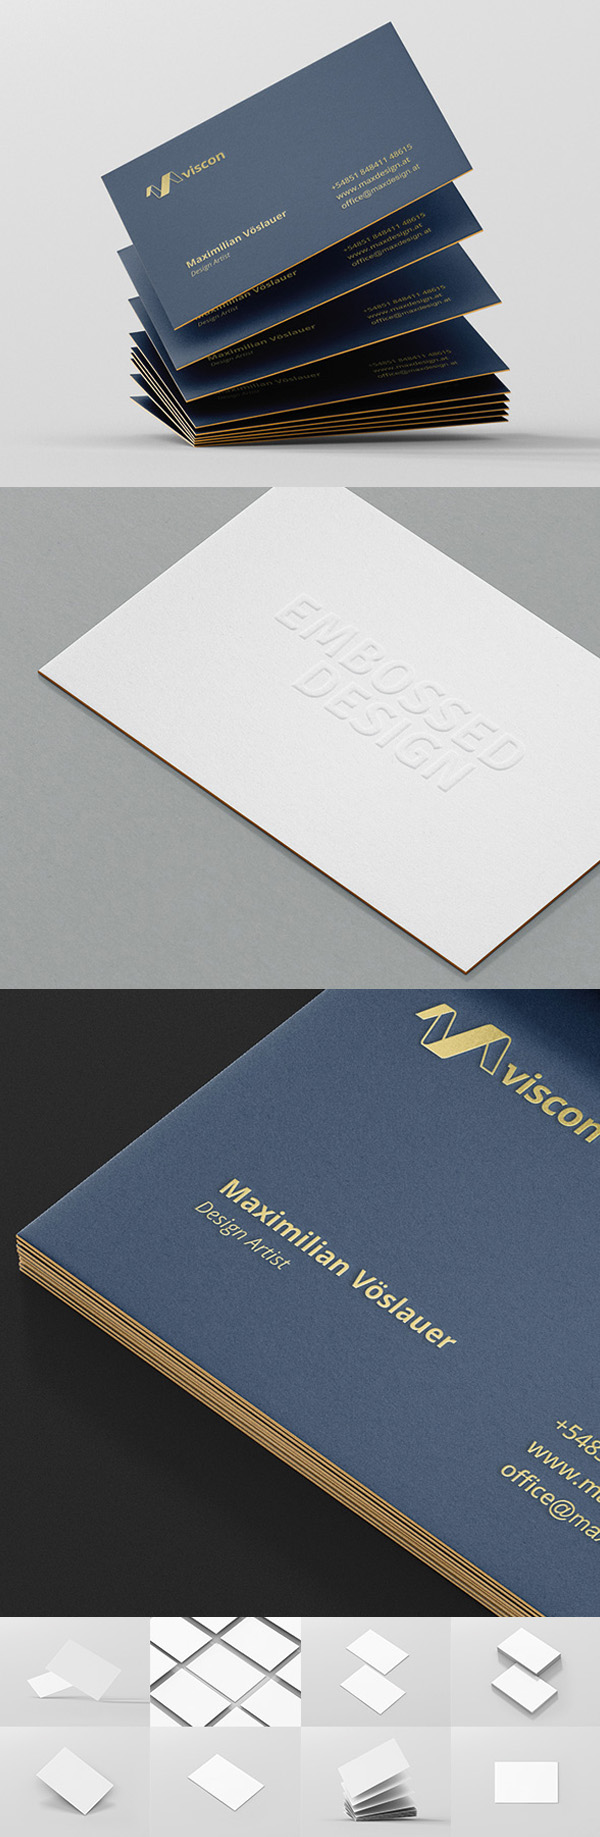 Photorealistic Mockups of Business Cards